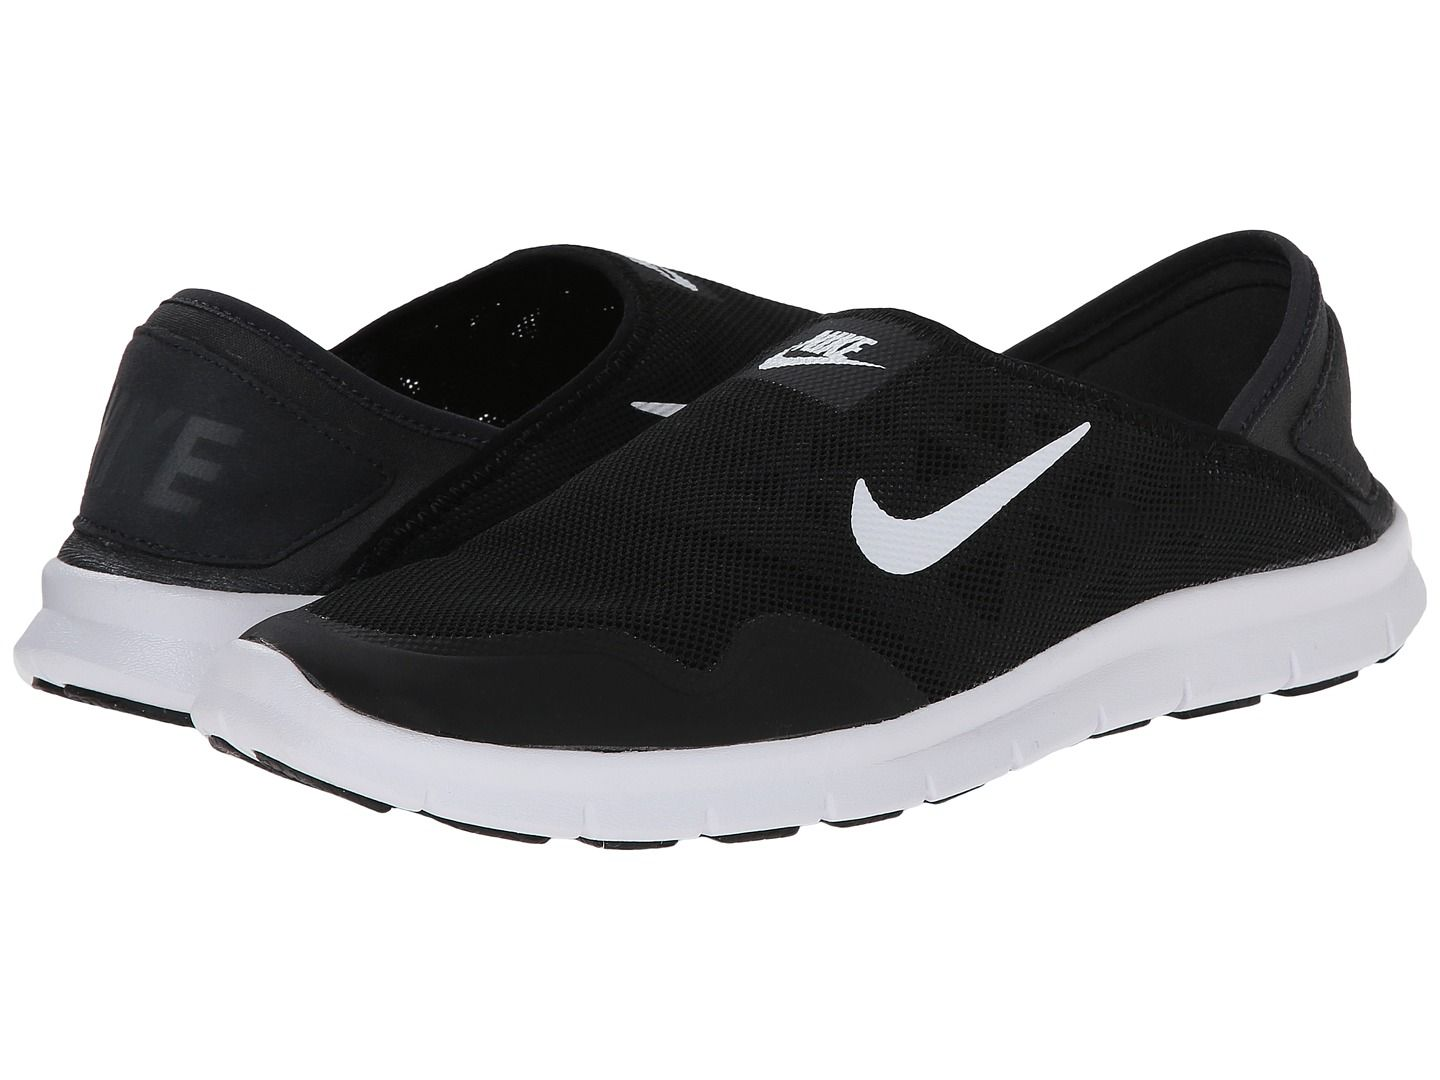 sale retailer 6eb02 80bcd Nike Orive Lite Slip-On Black White - Zappos.com Free Shipping BOTH Ways